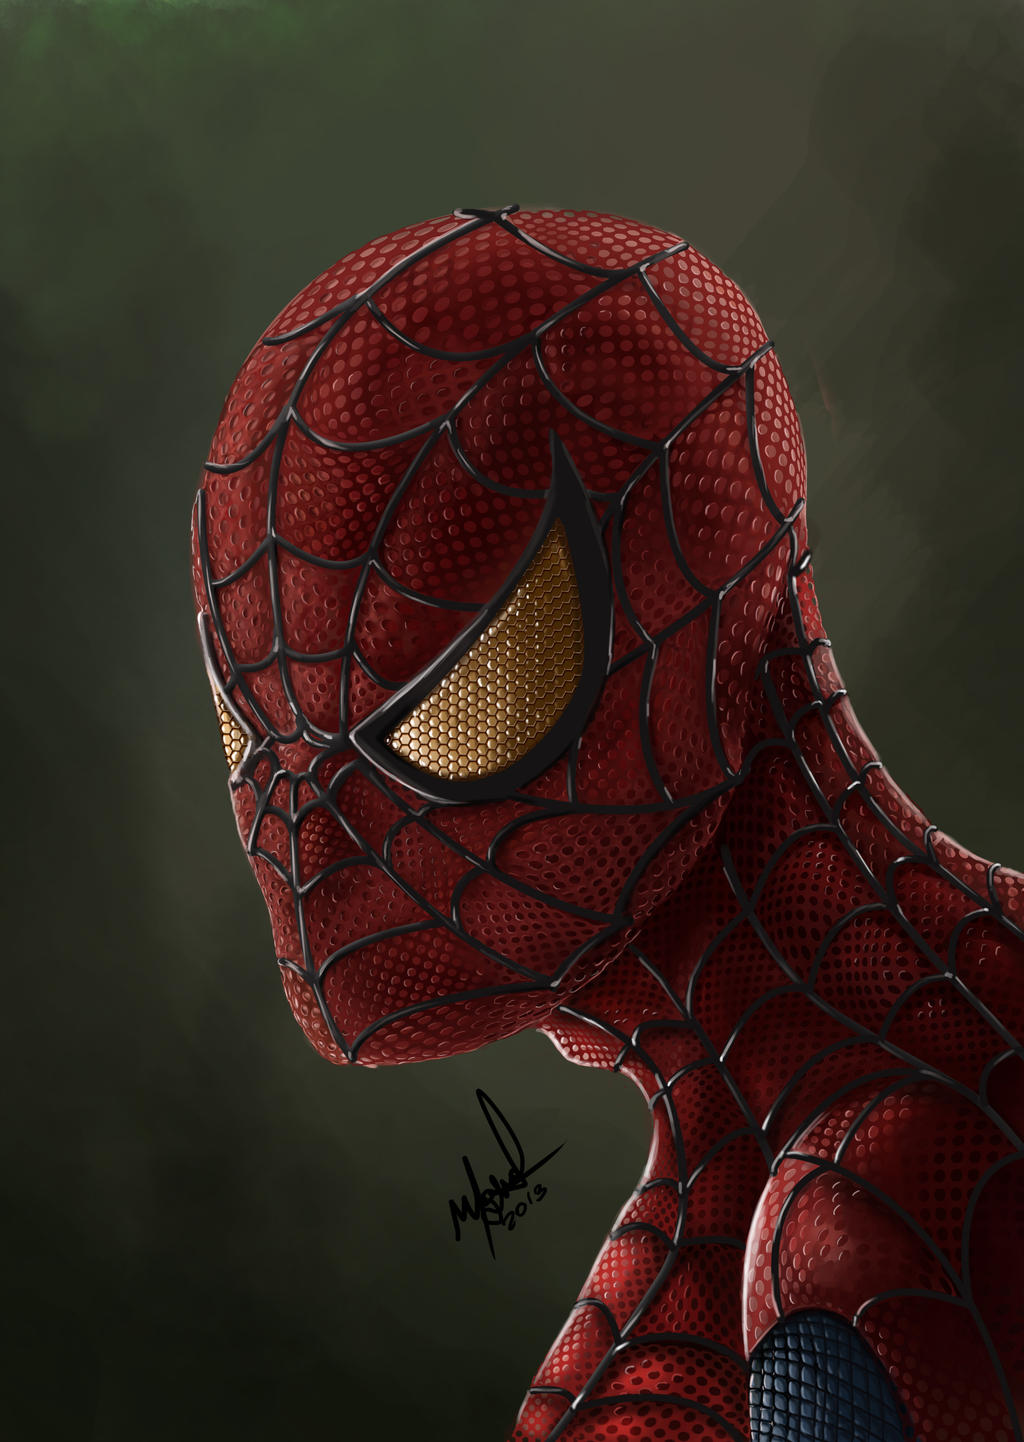 Spiderman by MICKEYTORRES